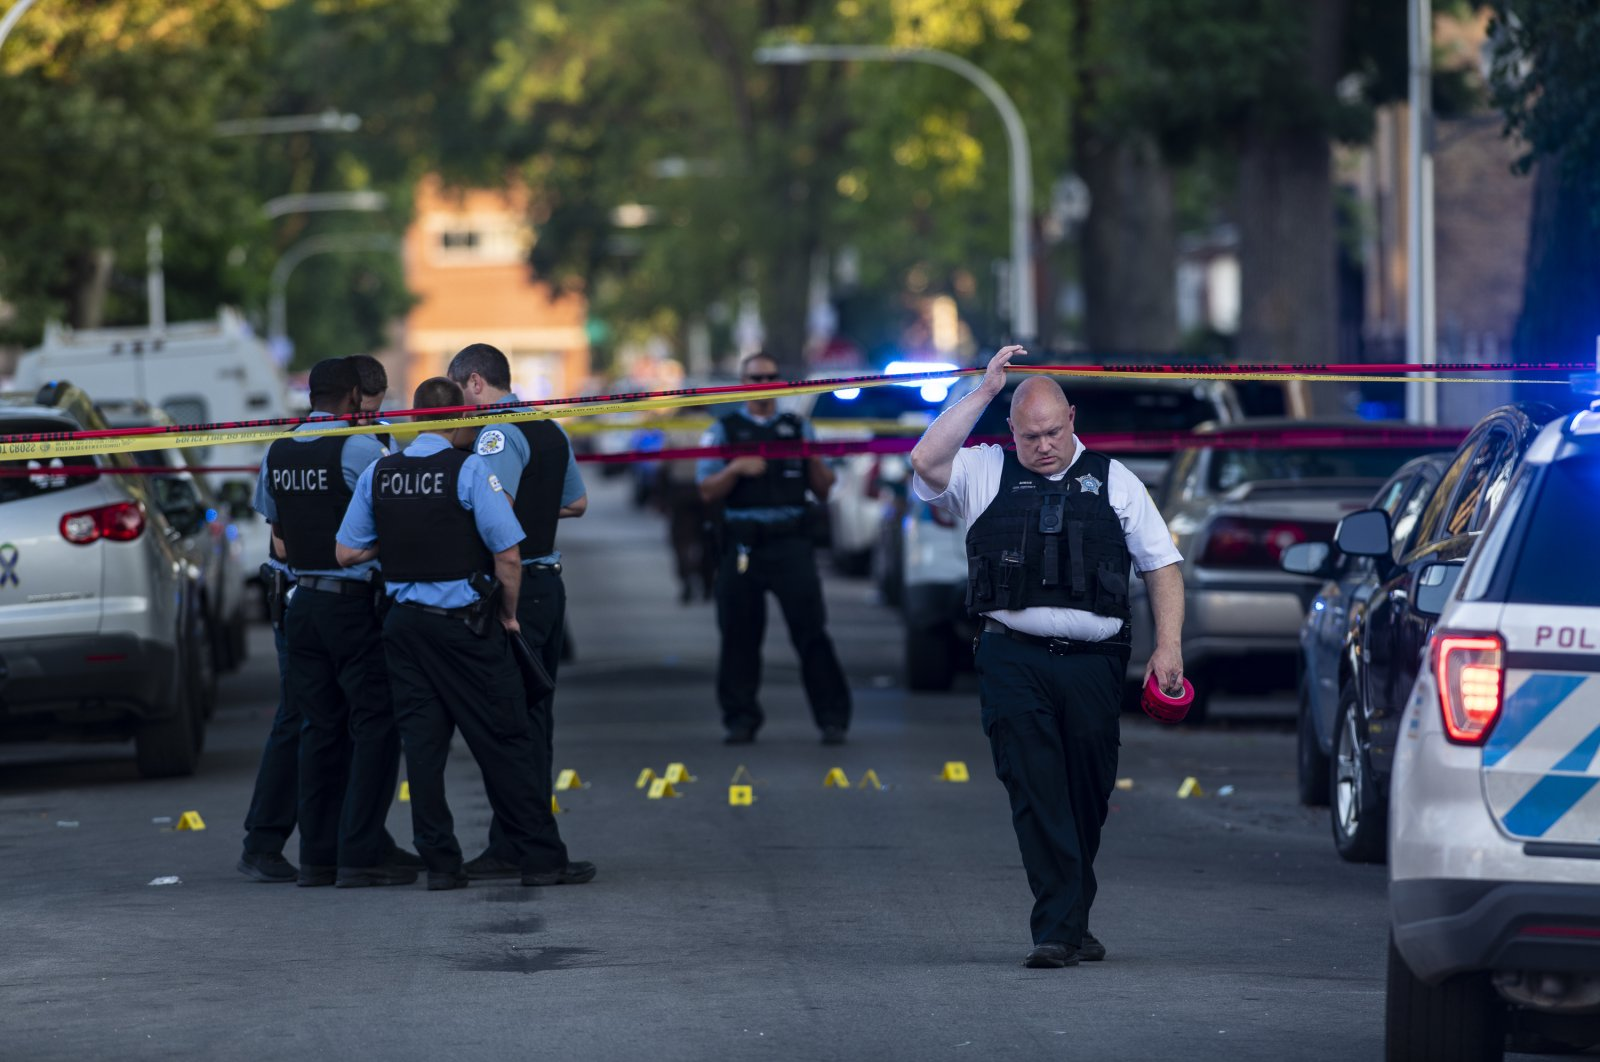 Chicago police officers investigate the scene of a deadly shooting, Chicago, July 5, 2020. (AP Photo)